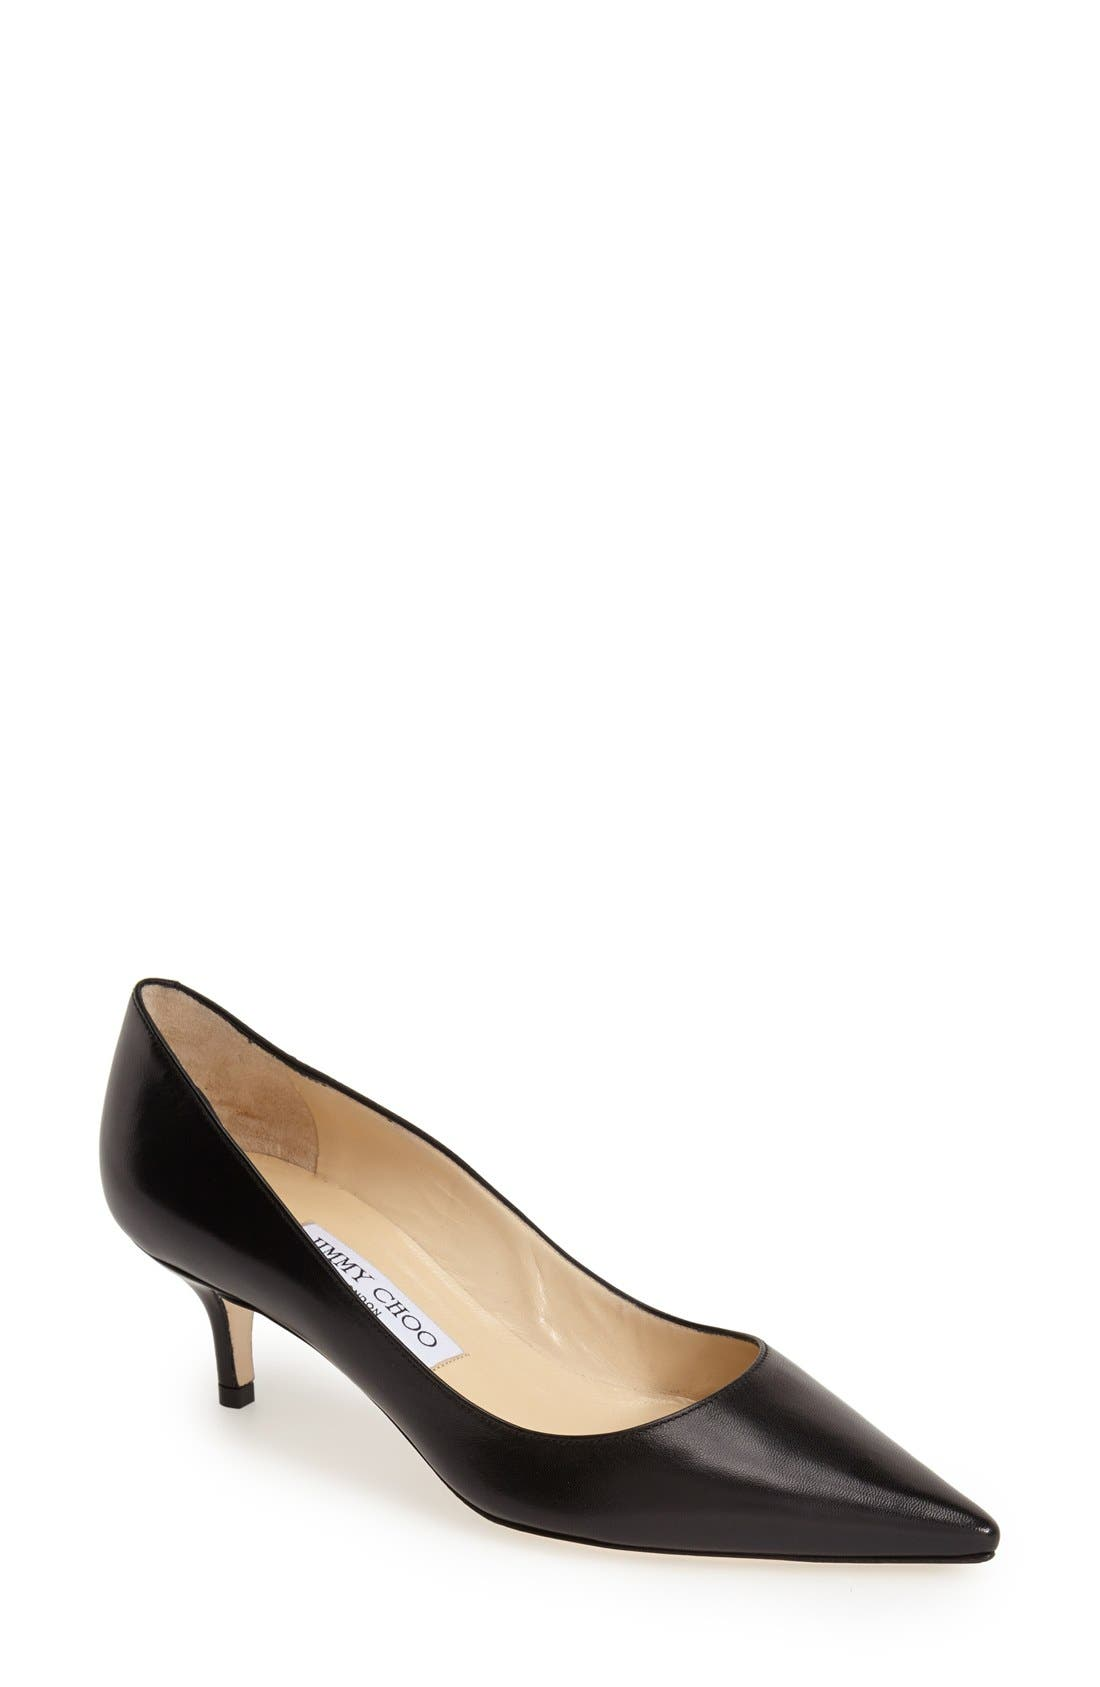 Main Image - Jimmy Choo 'Aza' Pump